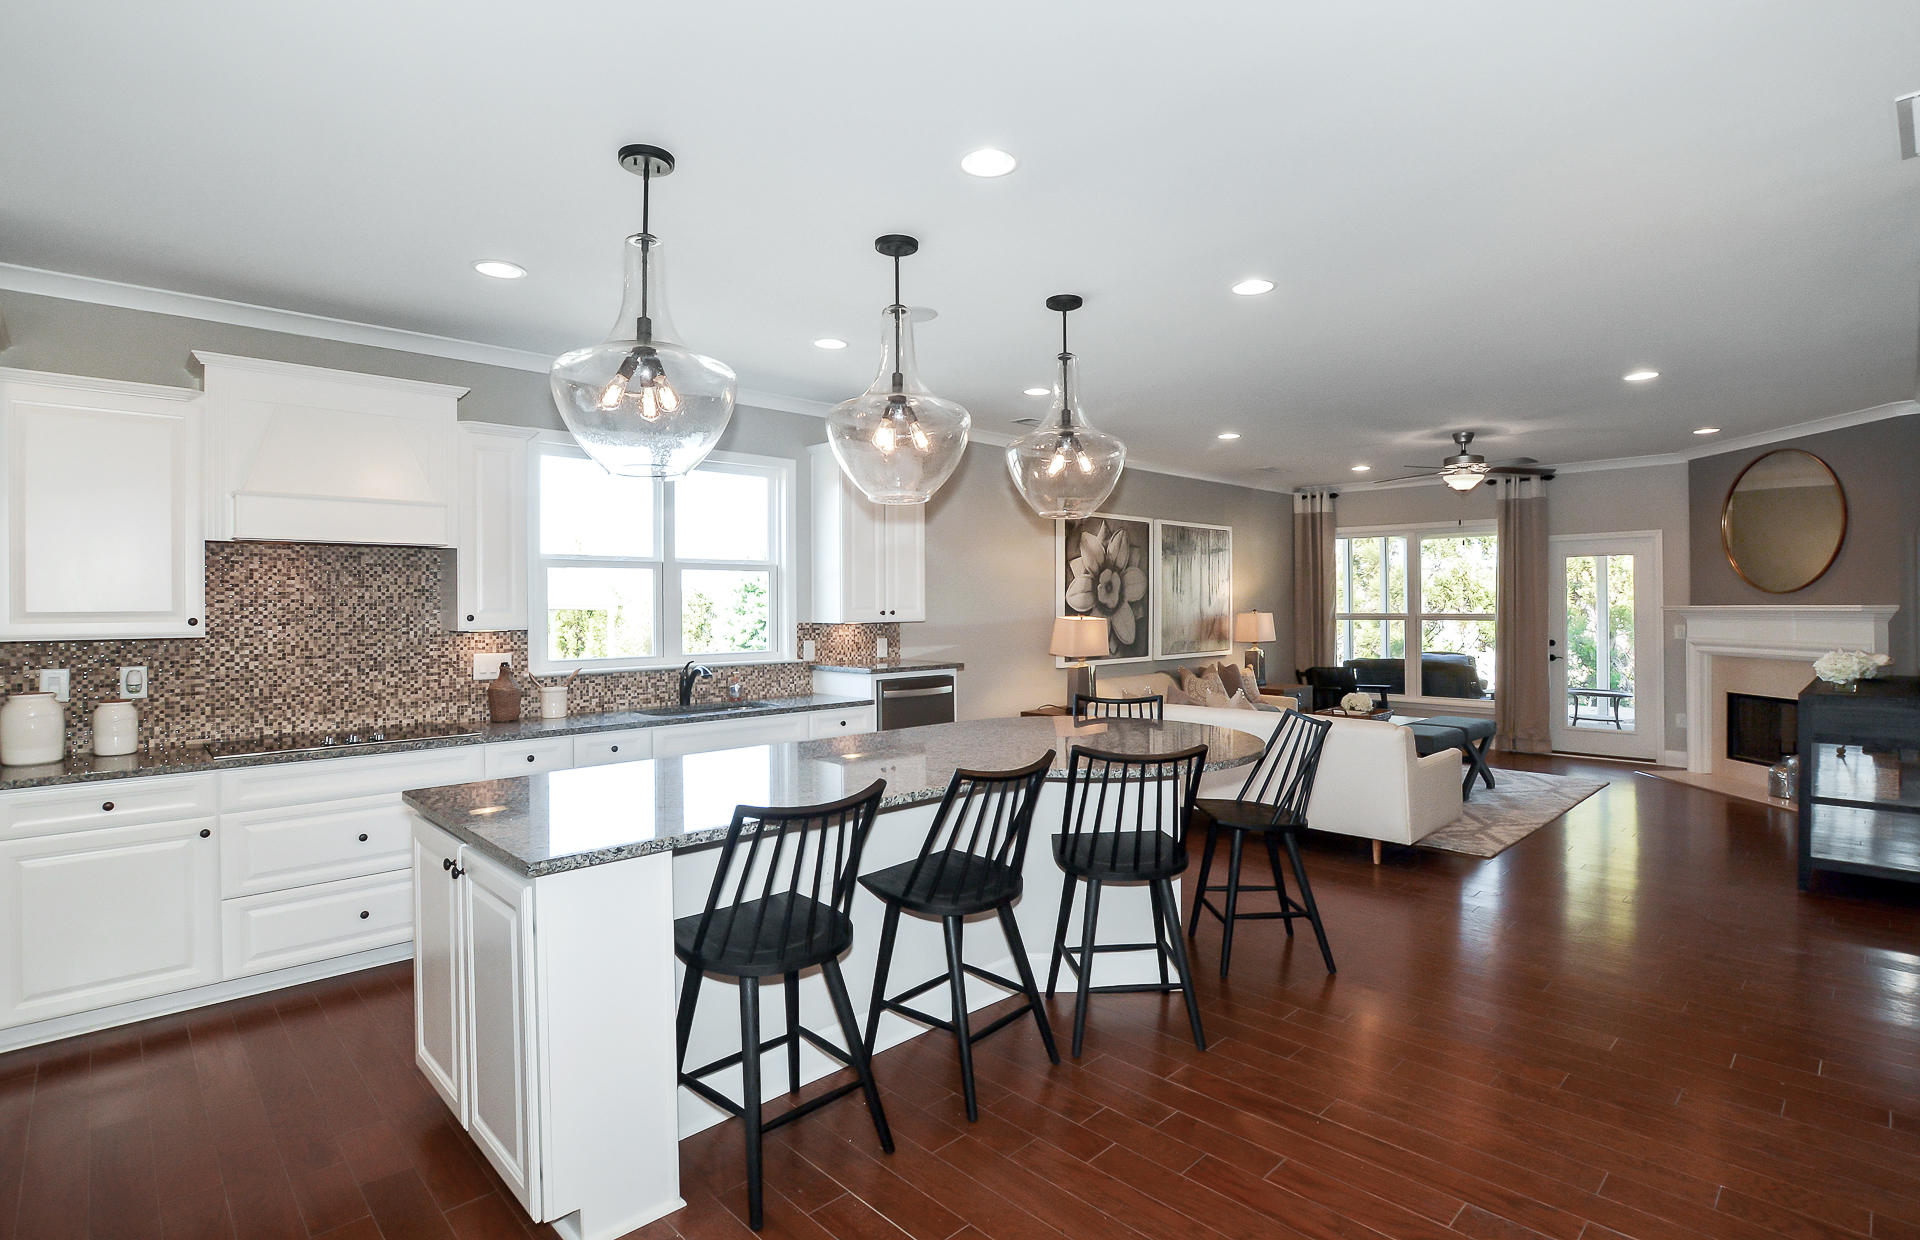 North Cove by Pulte Homes image 1